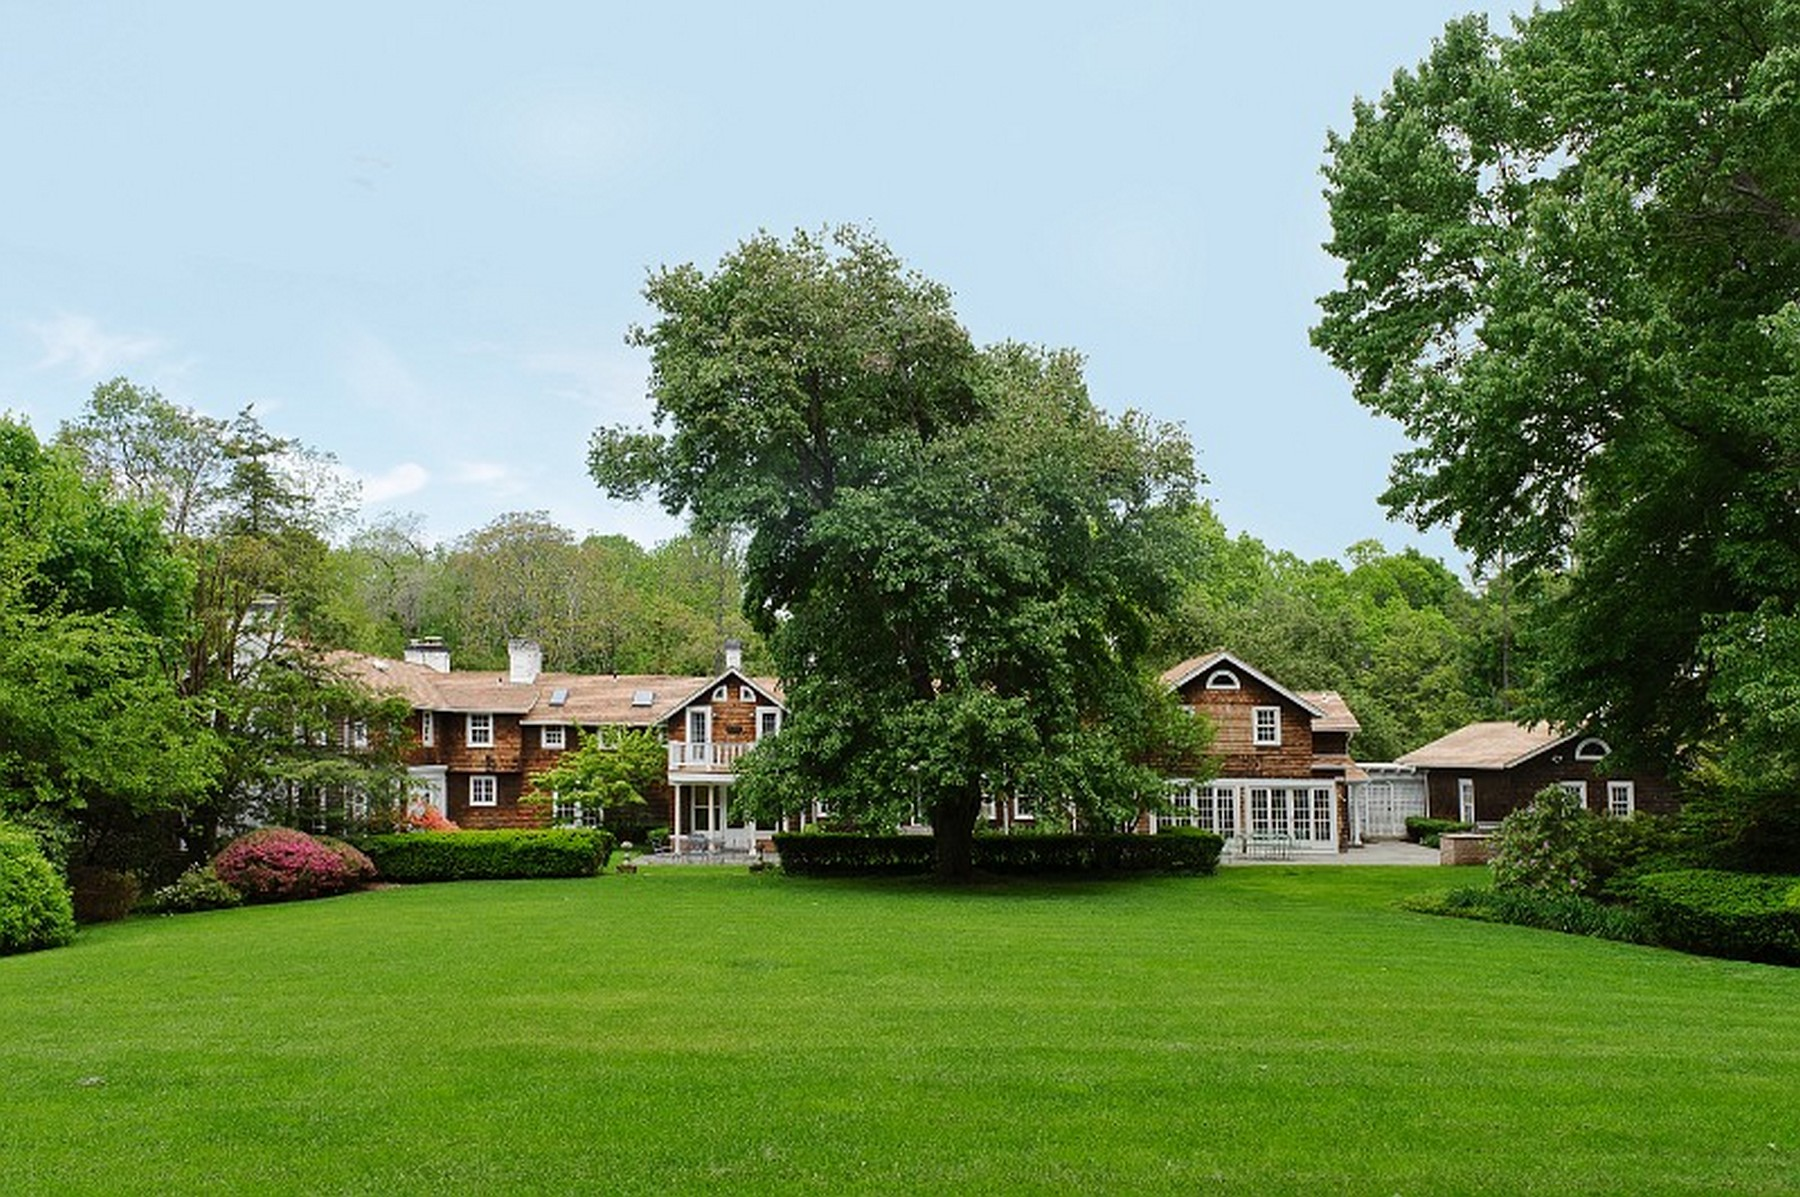 Single Family Home for Sale at Colonial 14 Horse Hollow Rd Lattingtown, New York, 11560 United States